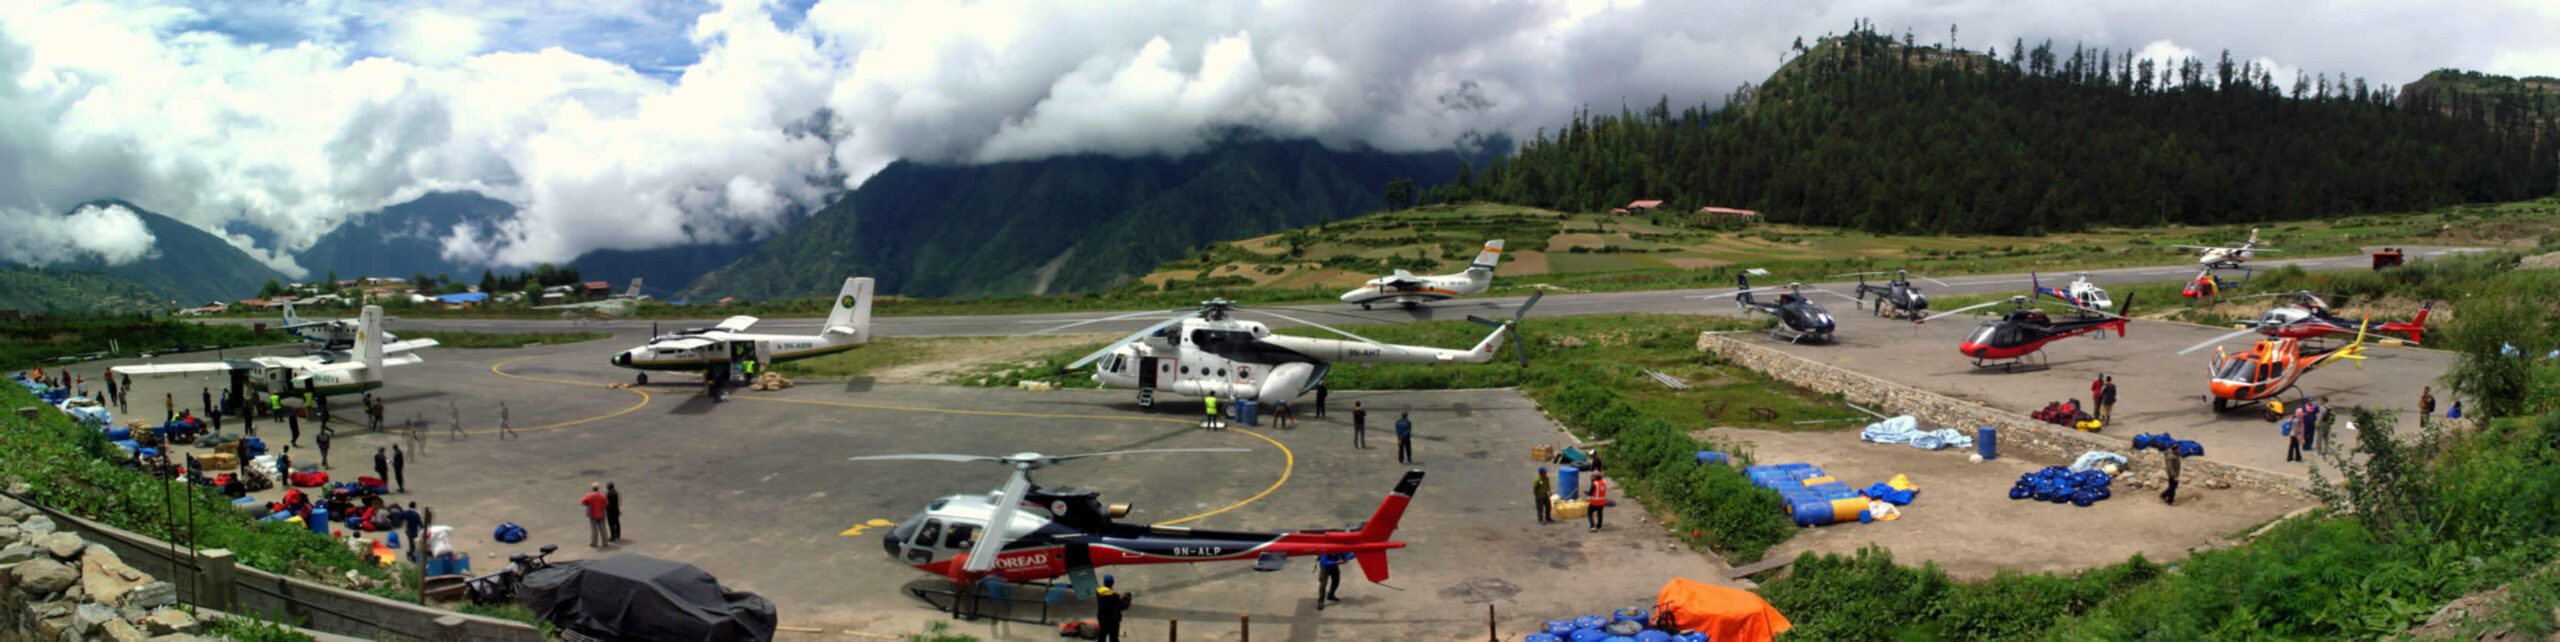 humla airport scaled